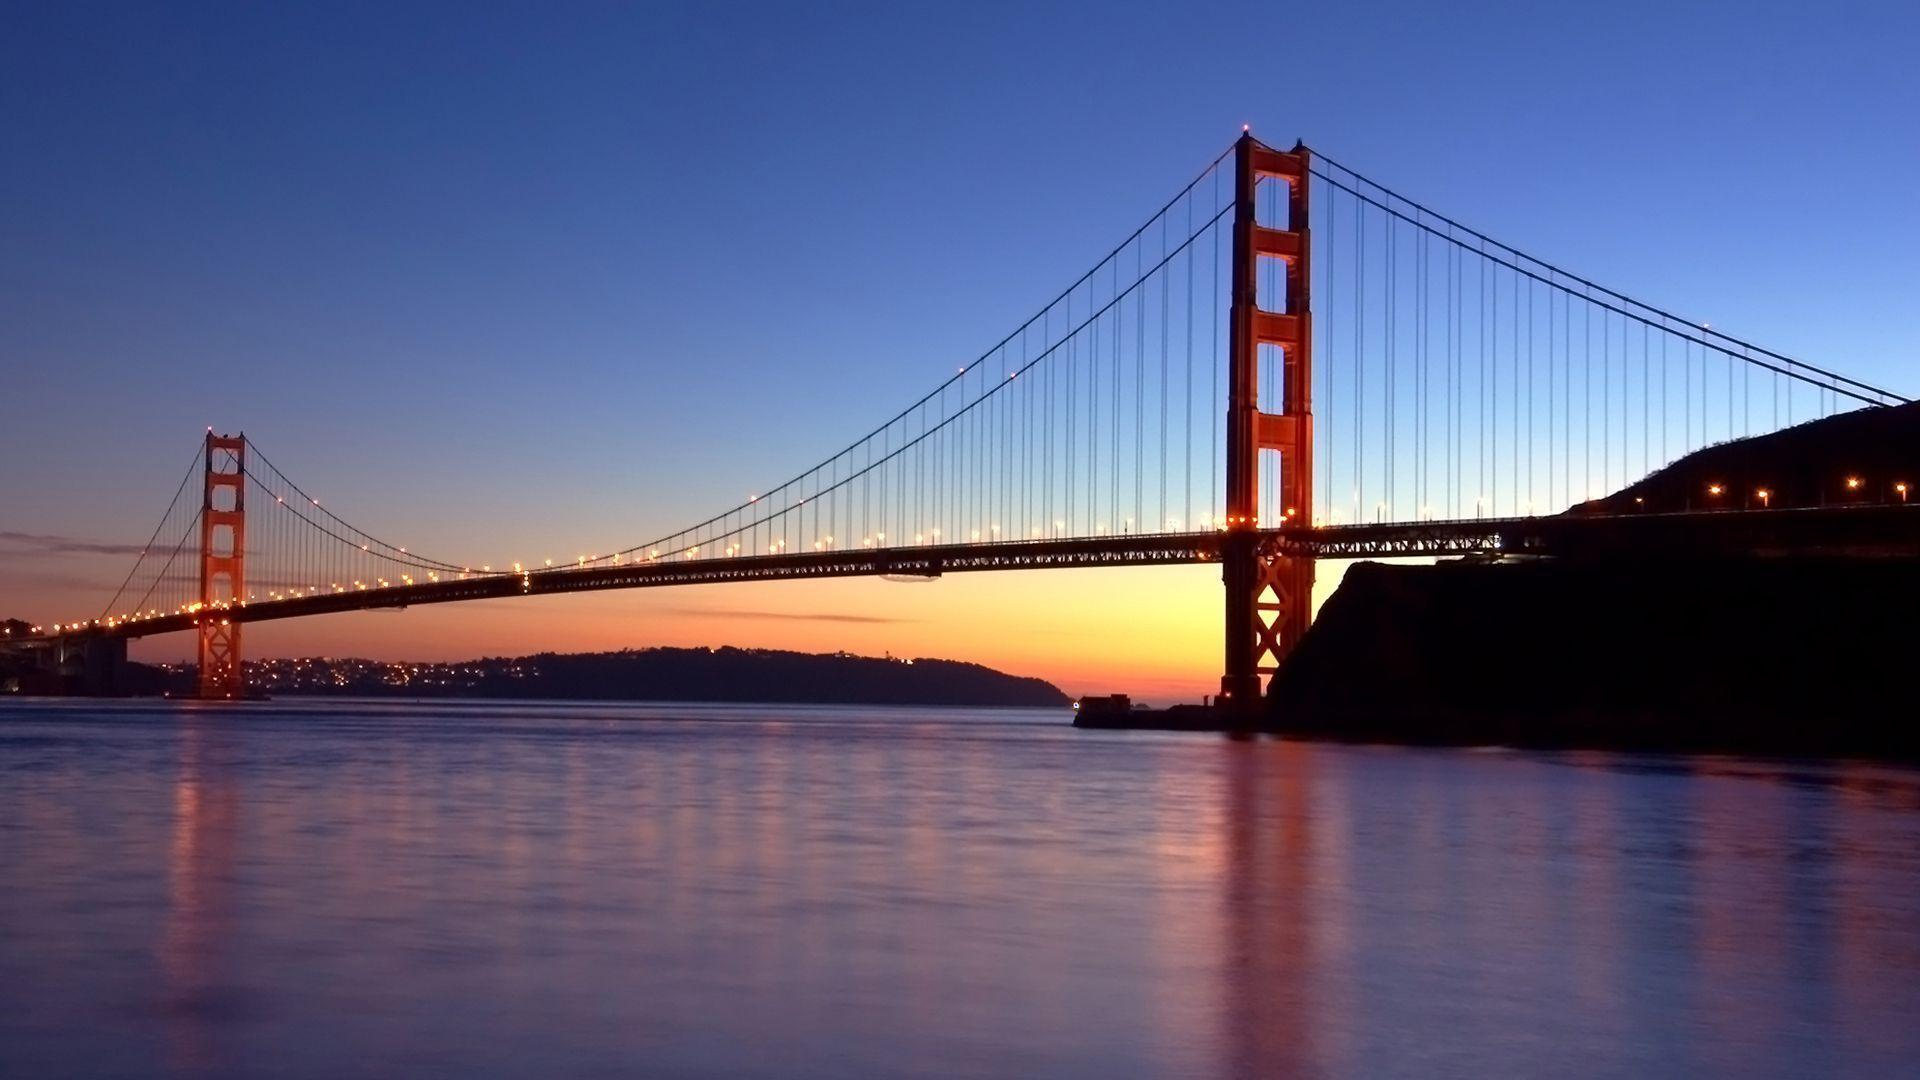 Golden Gate Bridge Wallpapers - HD Wallpapers Inn